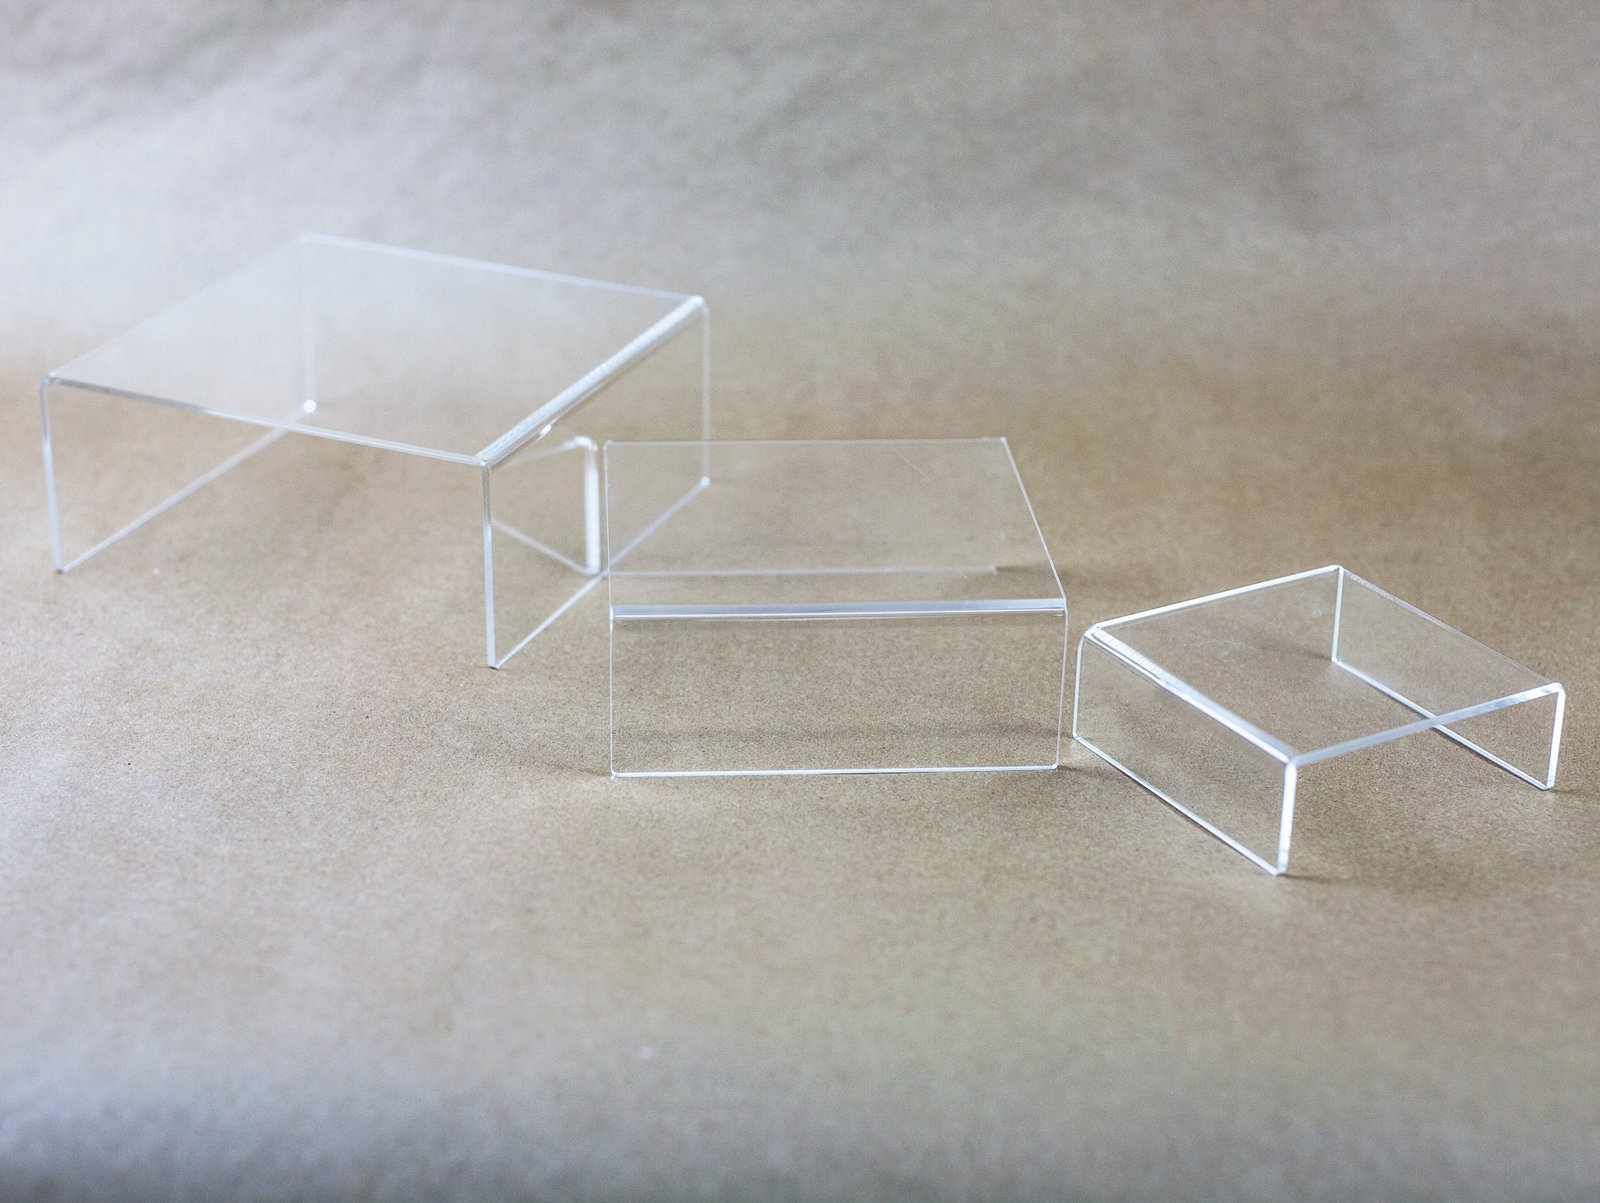 Huji Clear Medium Low Profile Set of 3 Acrylic Risers Display Stands (2 Set, Clear Acrylic Risers) by Huji (Image #5)